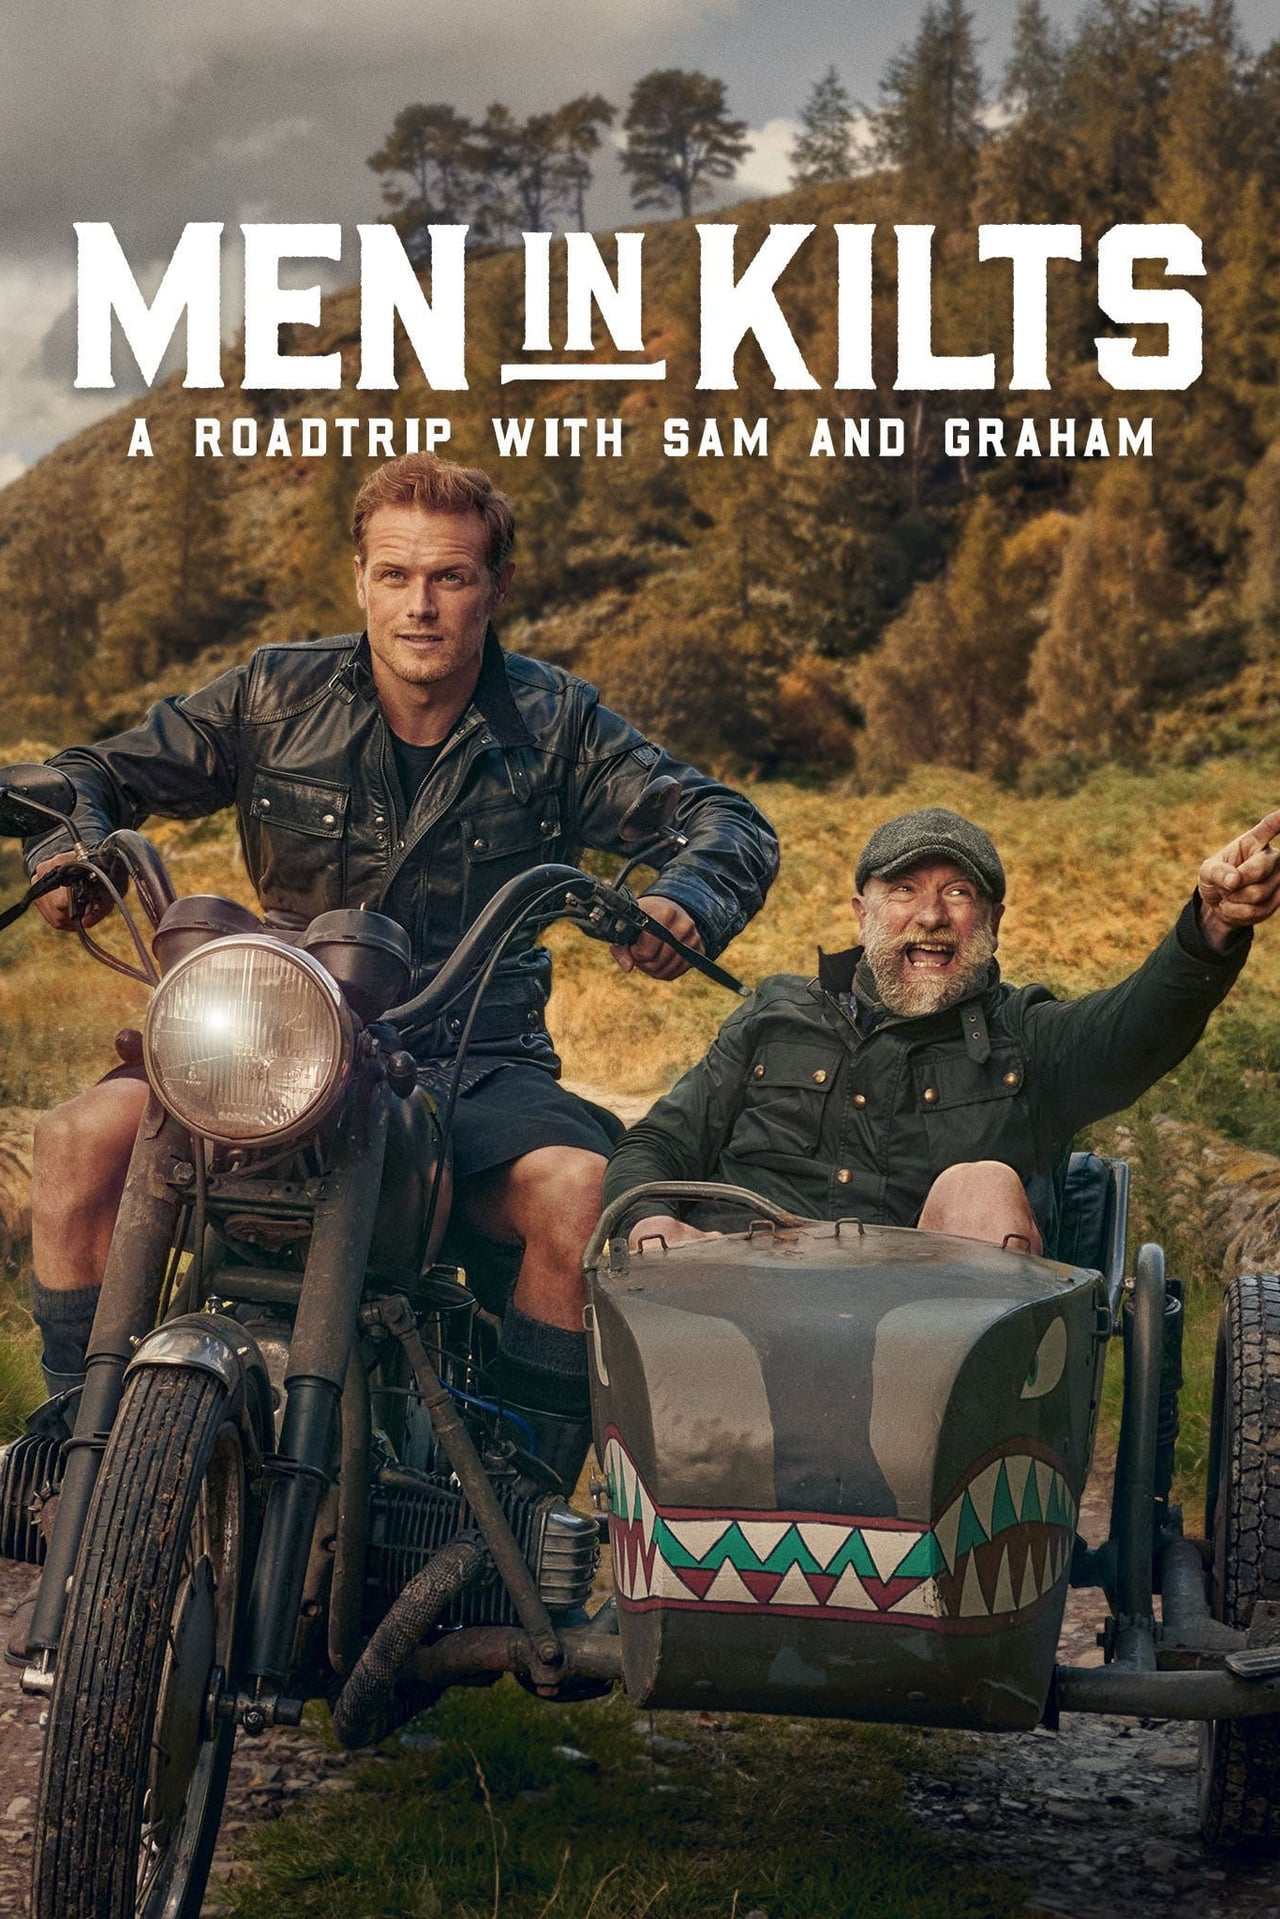 Men in Kilts: A Roadtrip with Sam and Graham (season 1)